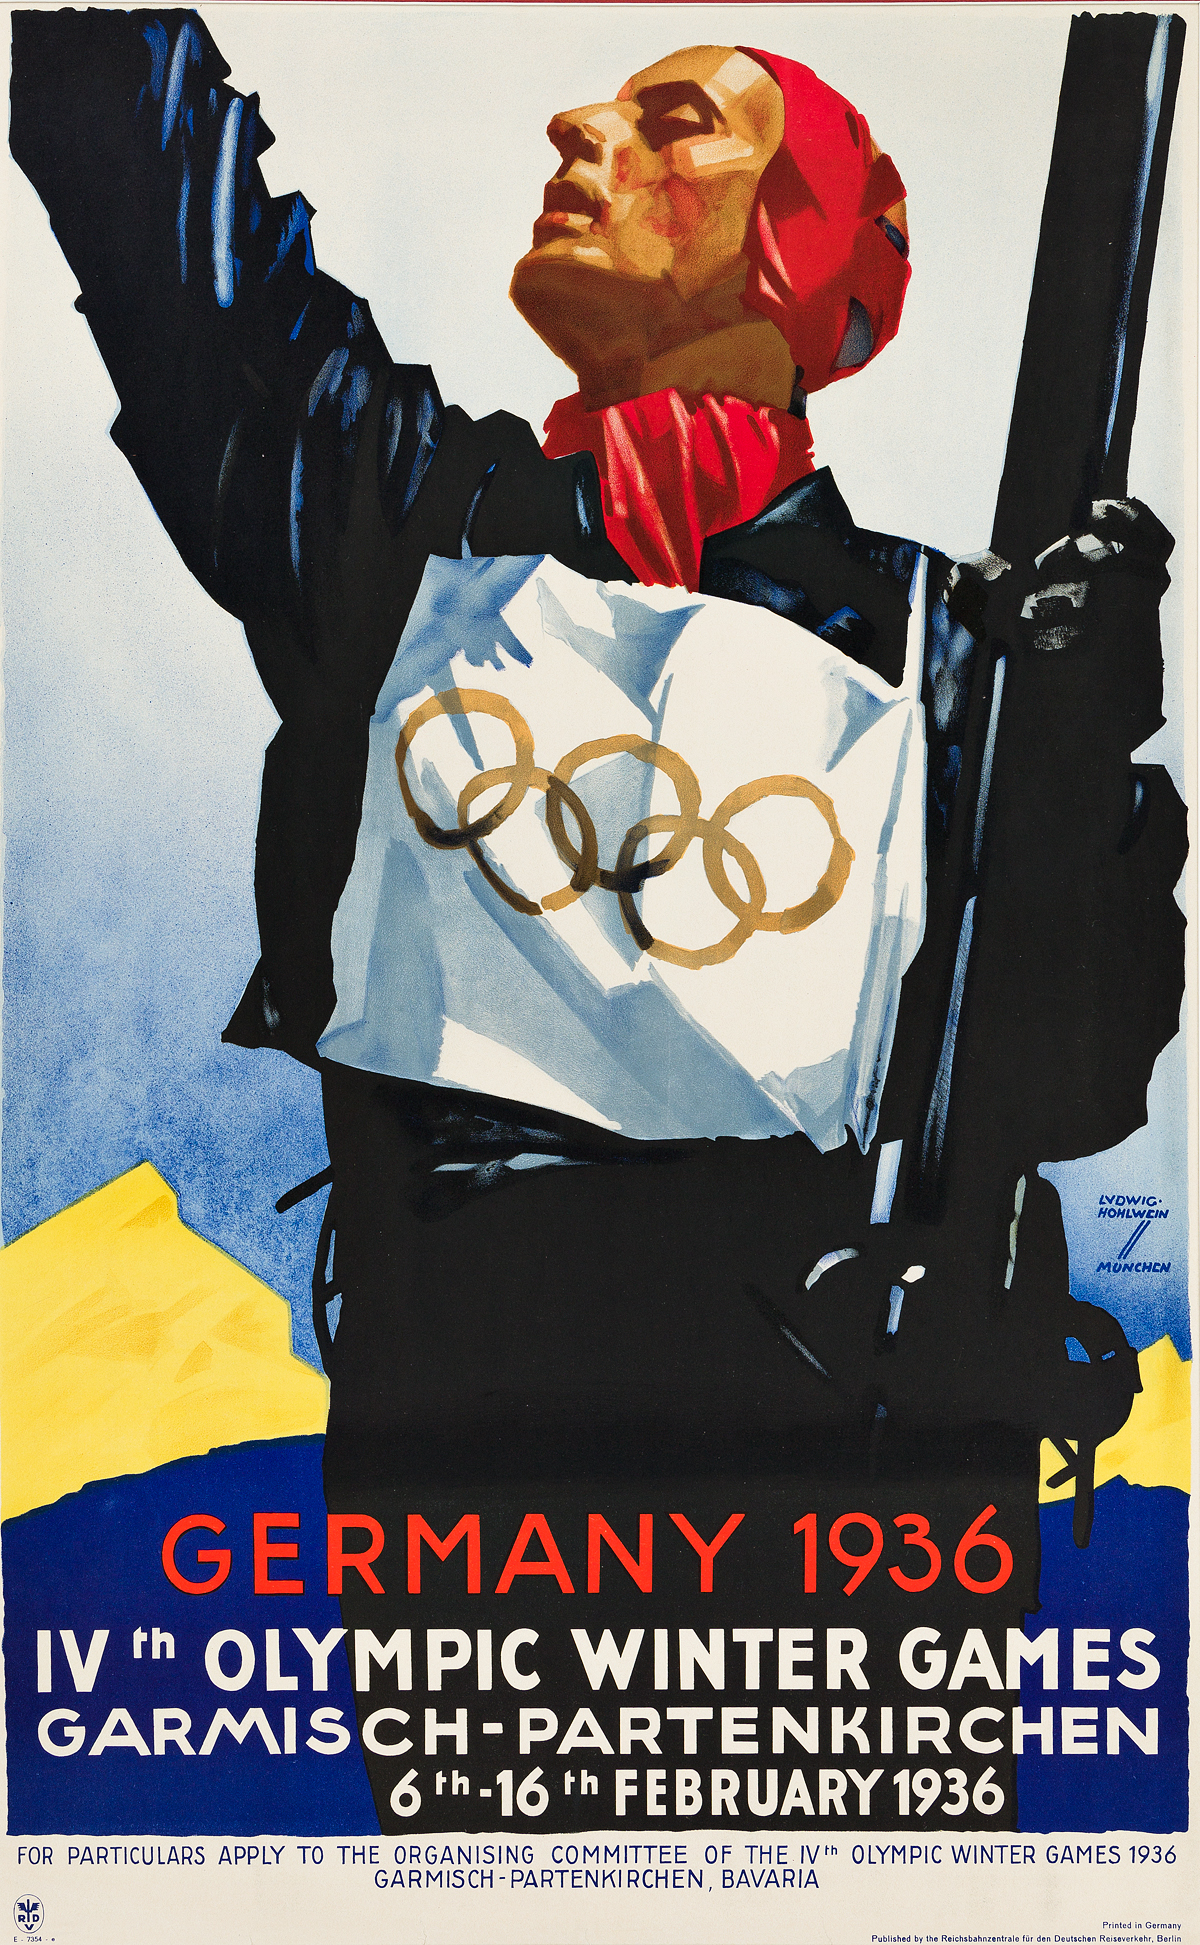 LUDWIG HOHLWEIN (1874-1949). GERMANY 1936 / IVTH OLYMPIC WINTER GAMES. 1936. 39x24 inches, 99x61 cm. Reichsbahnzentrale für den Deutsch